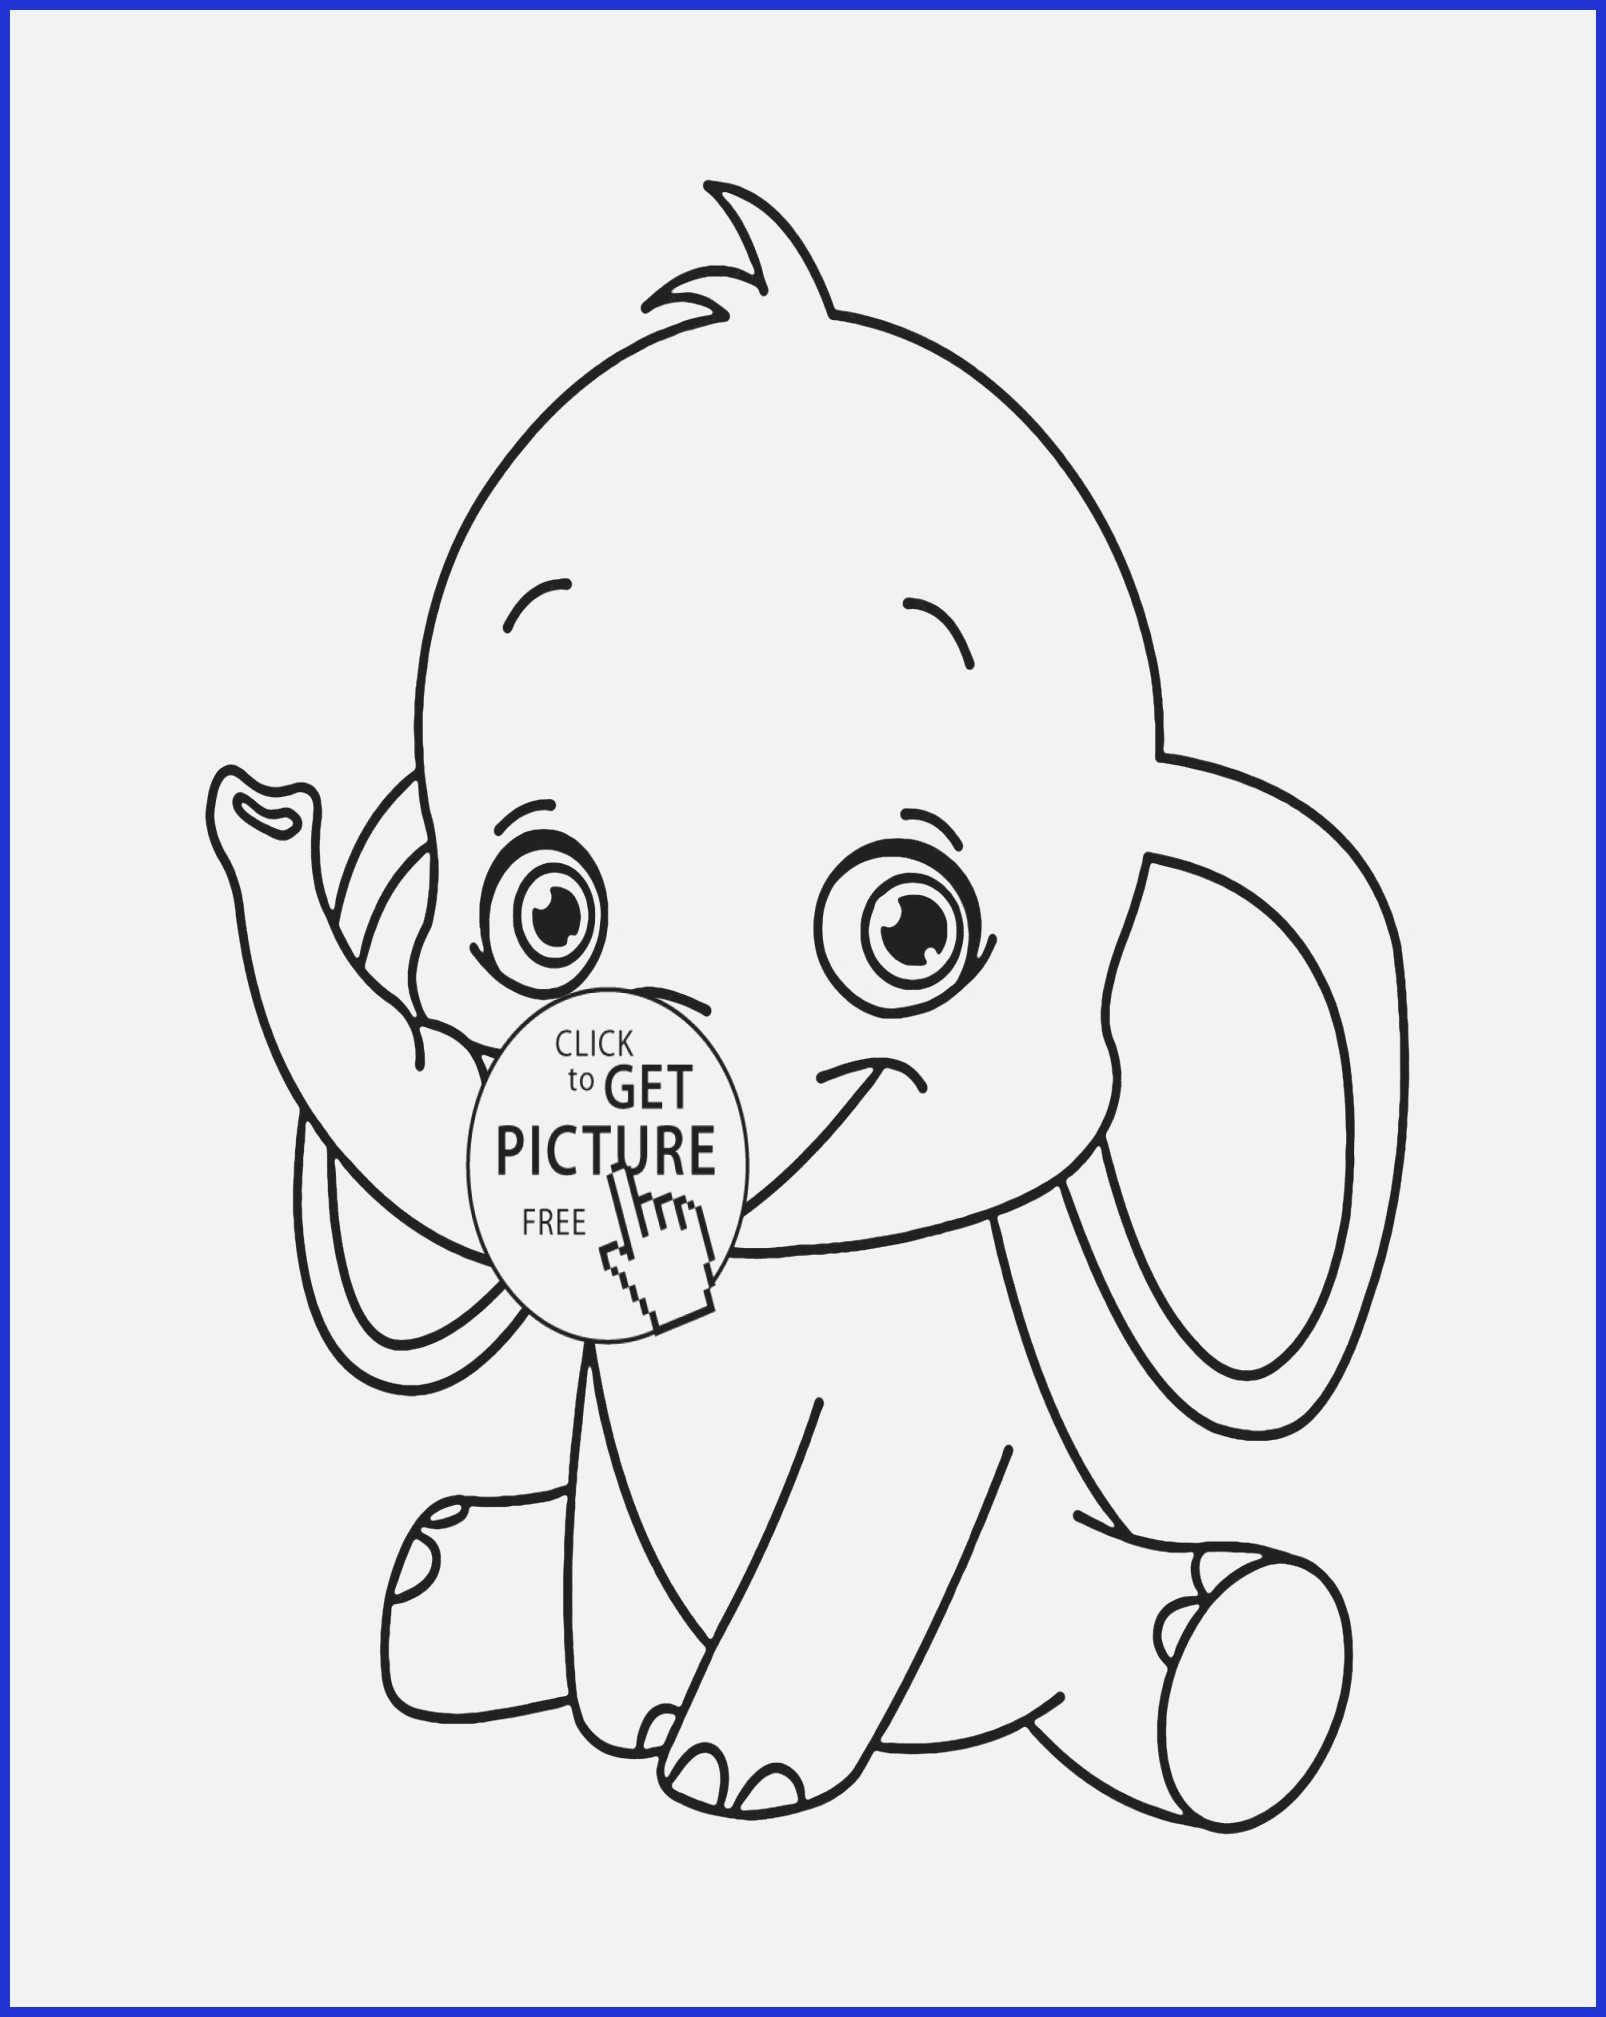 Elephant And Piggie Coloring Pages Piggie And Gerald Coloring Pages Beautiful Coloring Pages Elephants